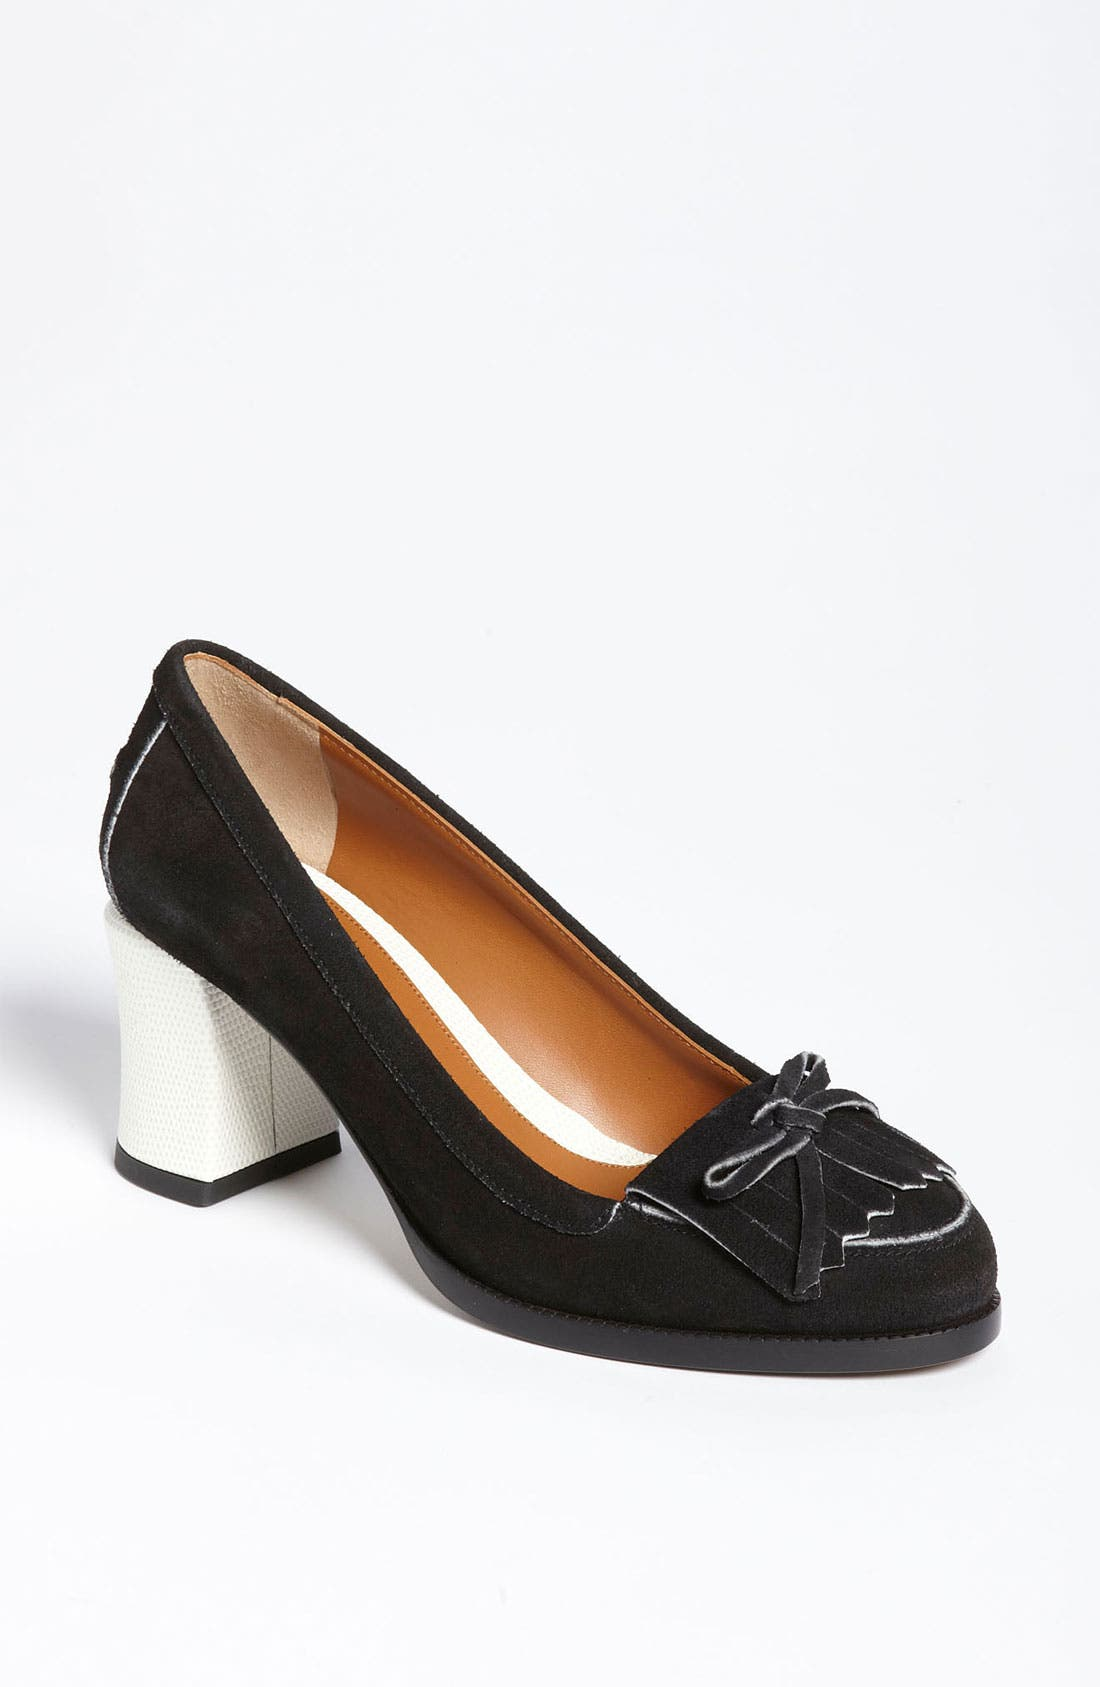 Alternate Image 1 Selected - Fendi 'Austen' Loafer Pump